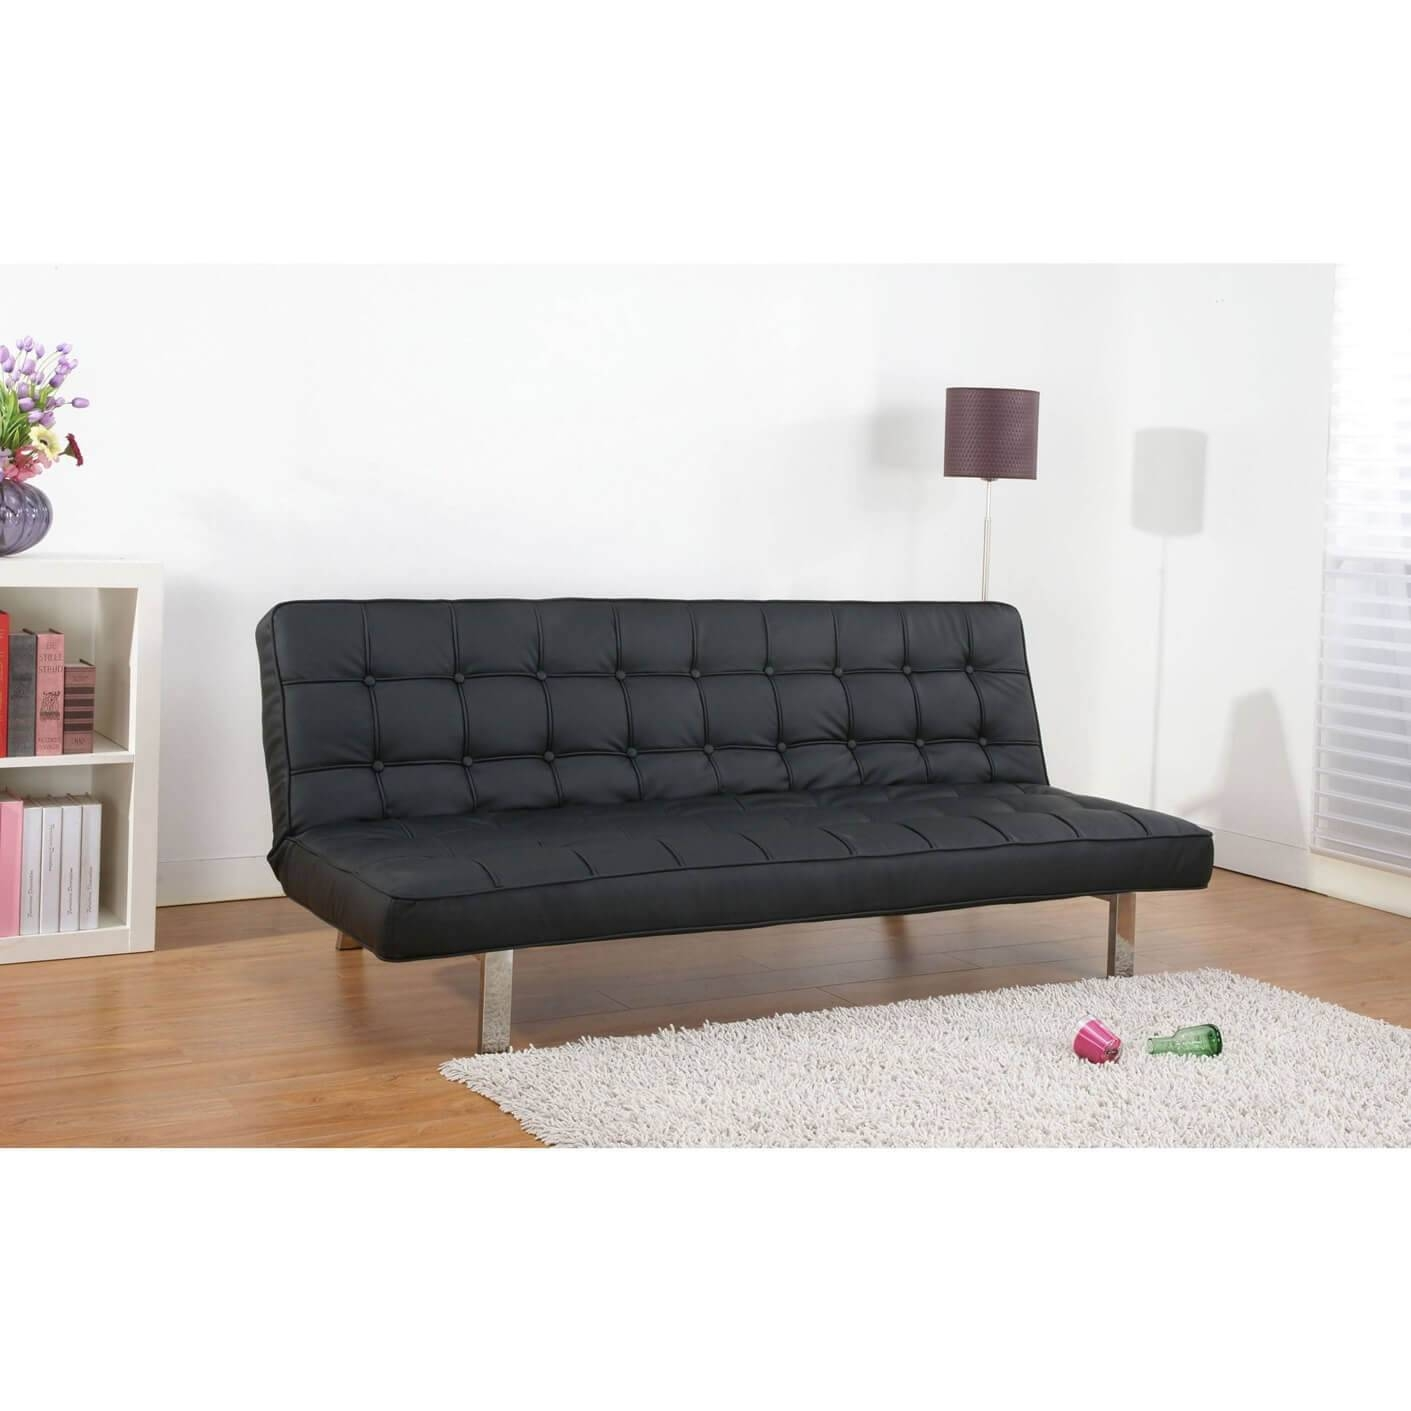 Furniture: Walmart Kebo Futon Sofa Bed Reviewhome Design Ideas intended for Kebo Futon Sofas (Image 6 of 15)